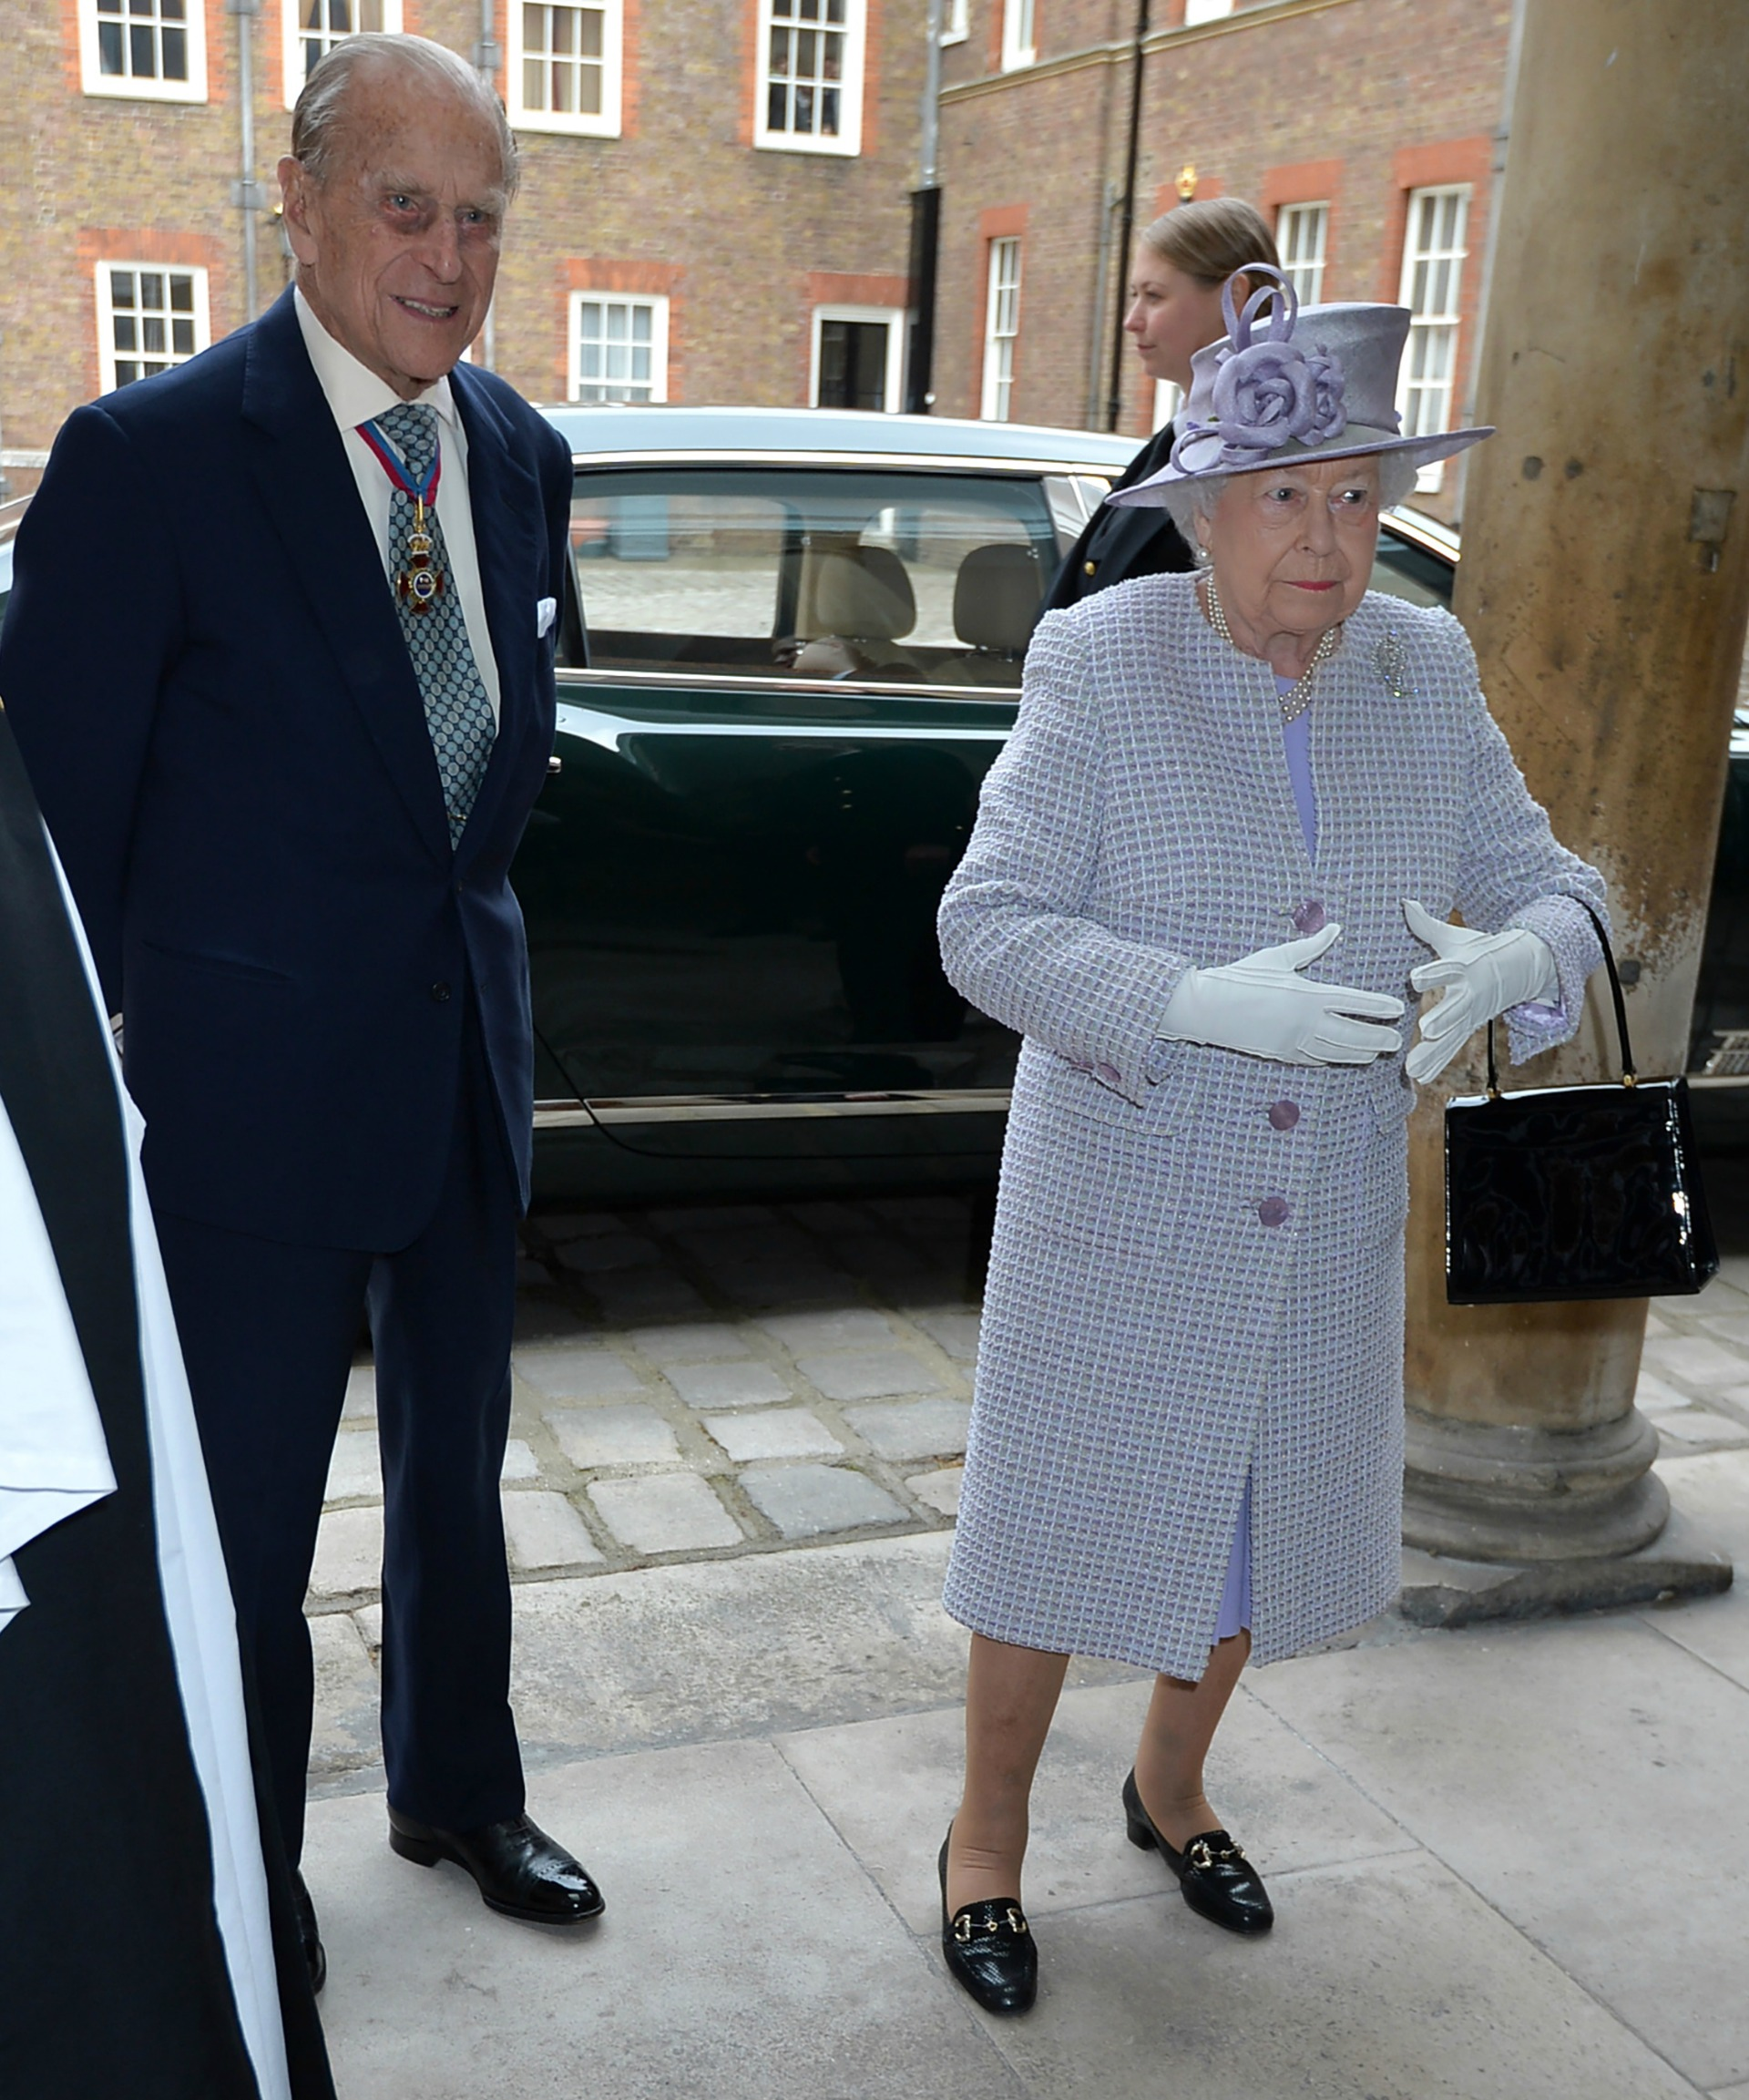 The day Prince Philip visited Bolton